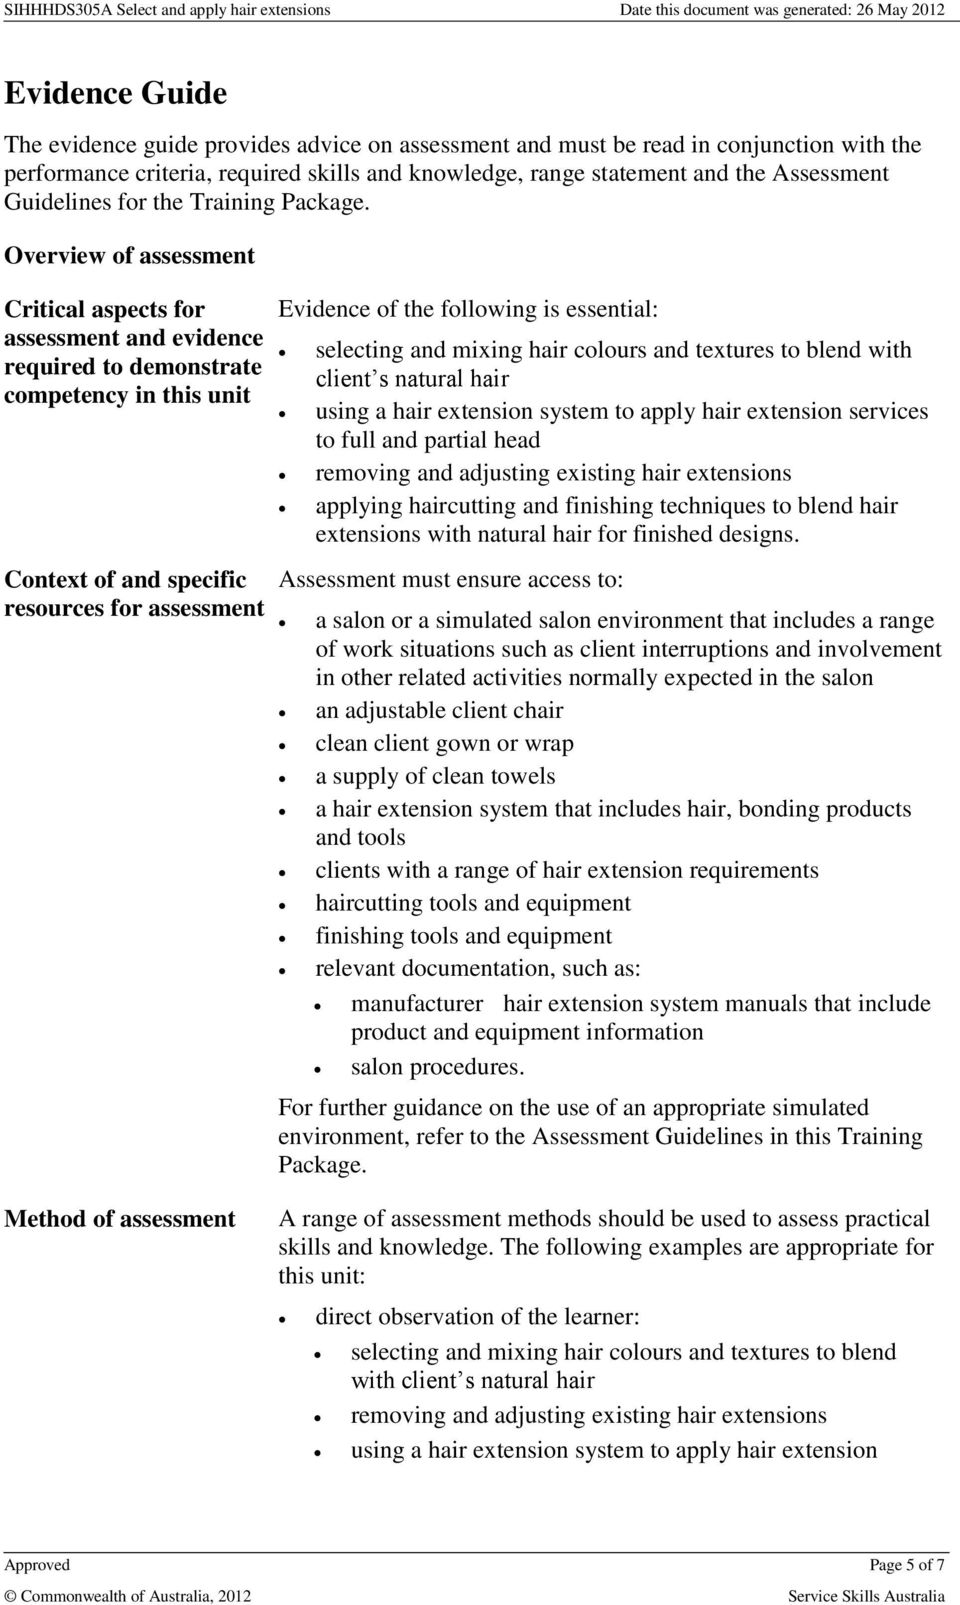 Overview of assessment Critical aspects for assessment and evidence required to demonstrate competency in this unit Context of and specific resources for assessment Evidence of the following is